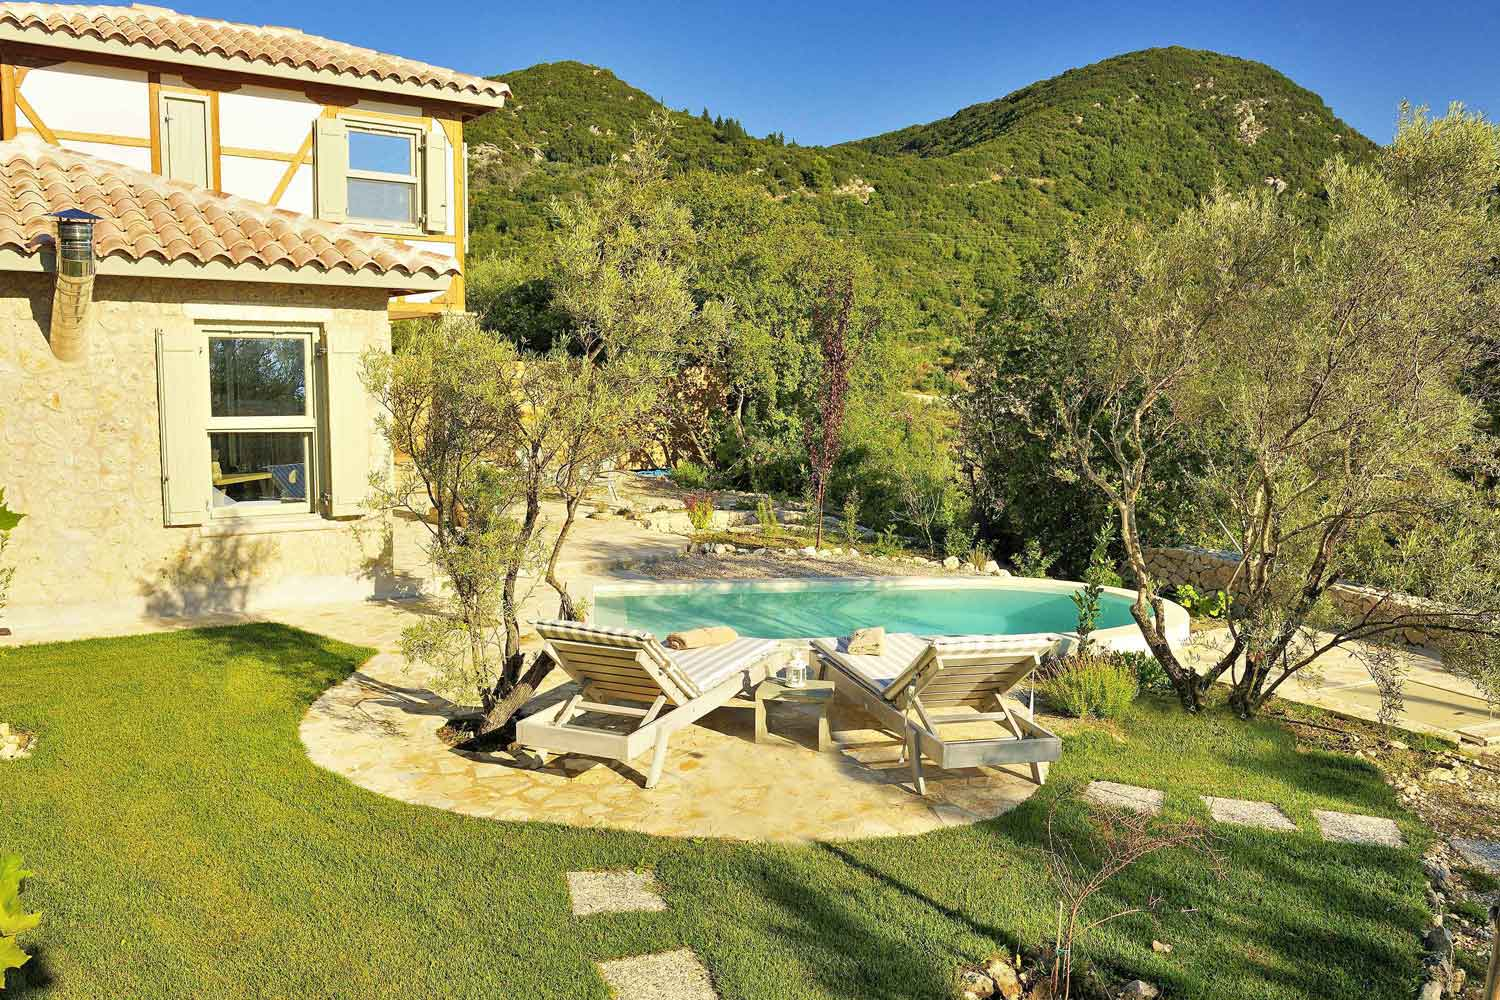 private pool villa at Ionian islands, a marvelous garden